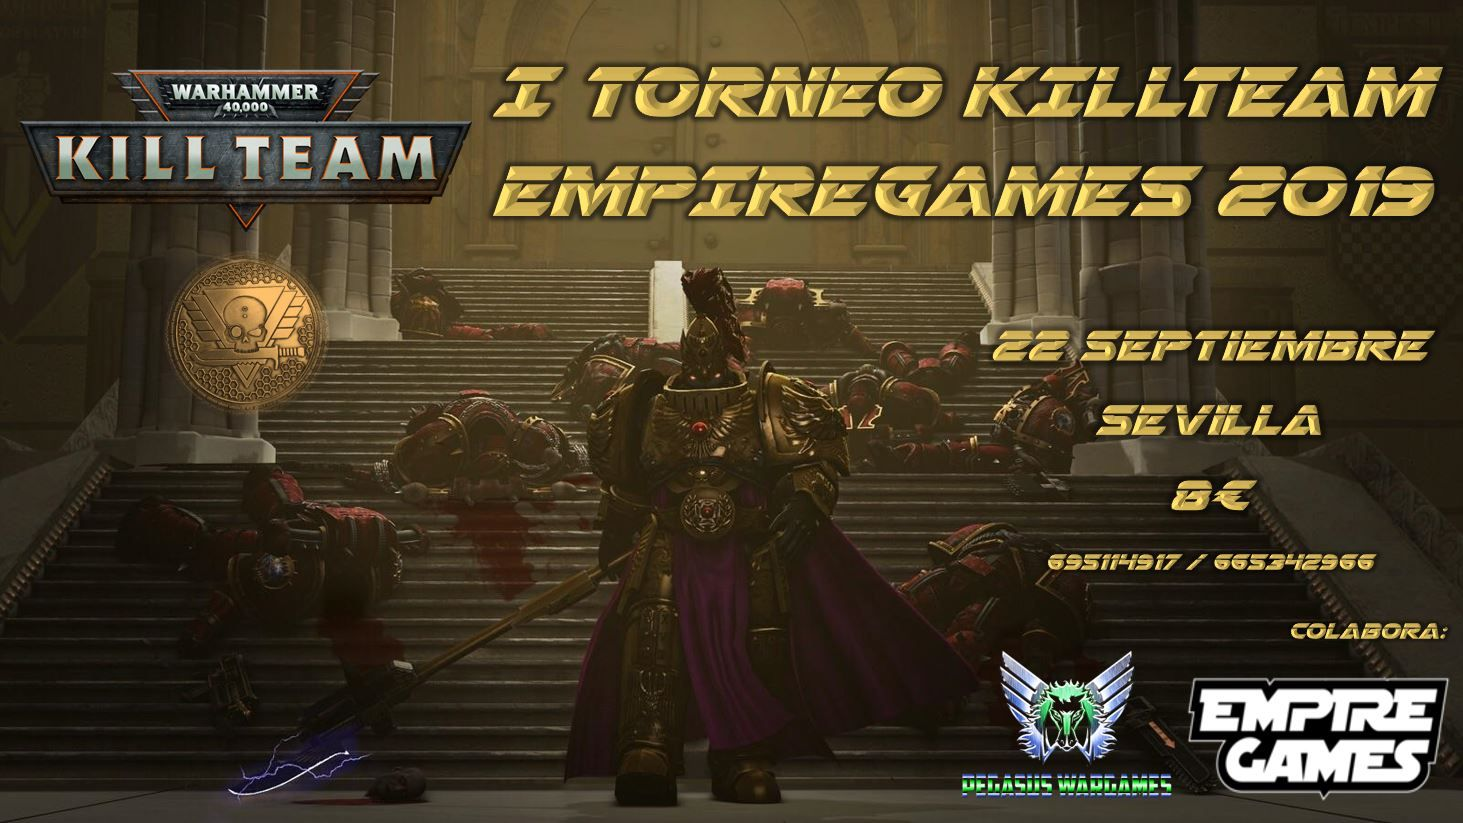 Torneo Warhammer Kill Team